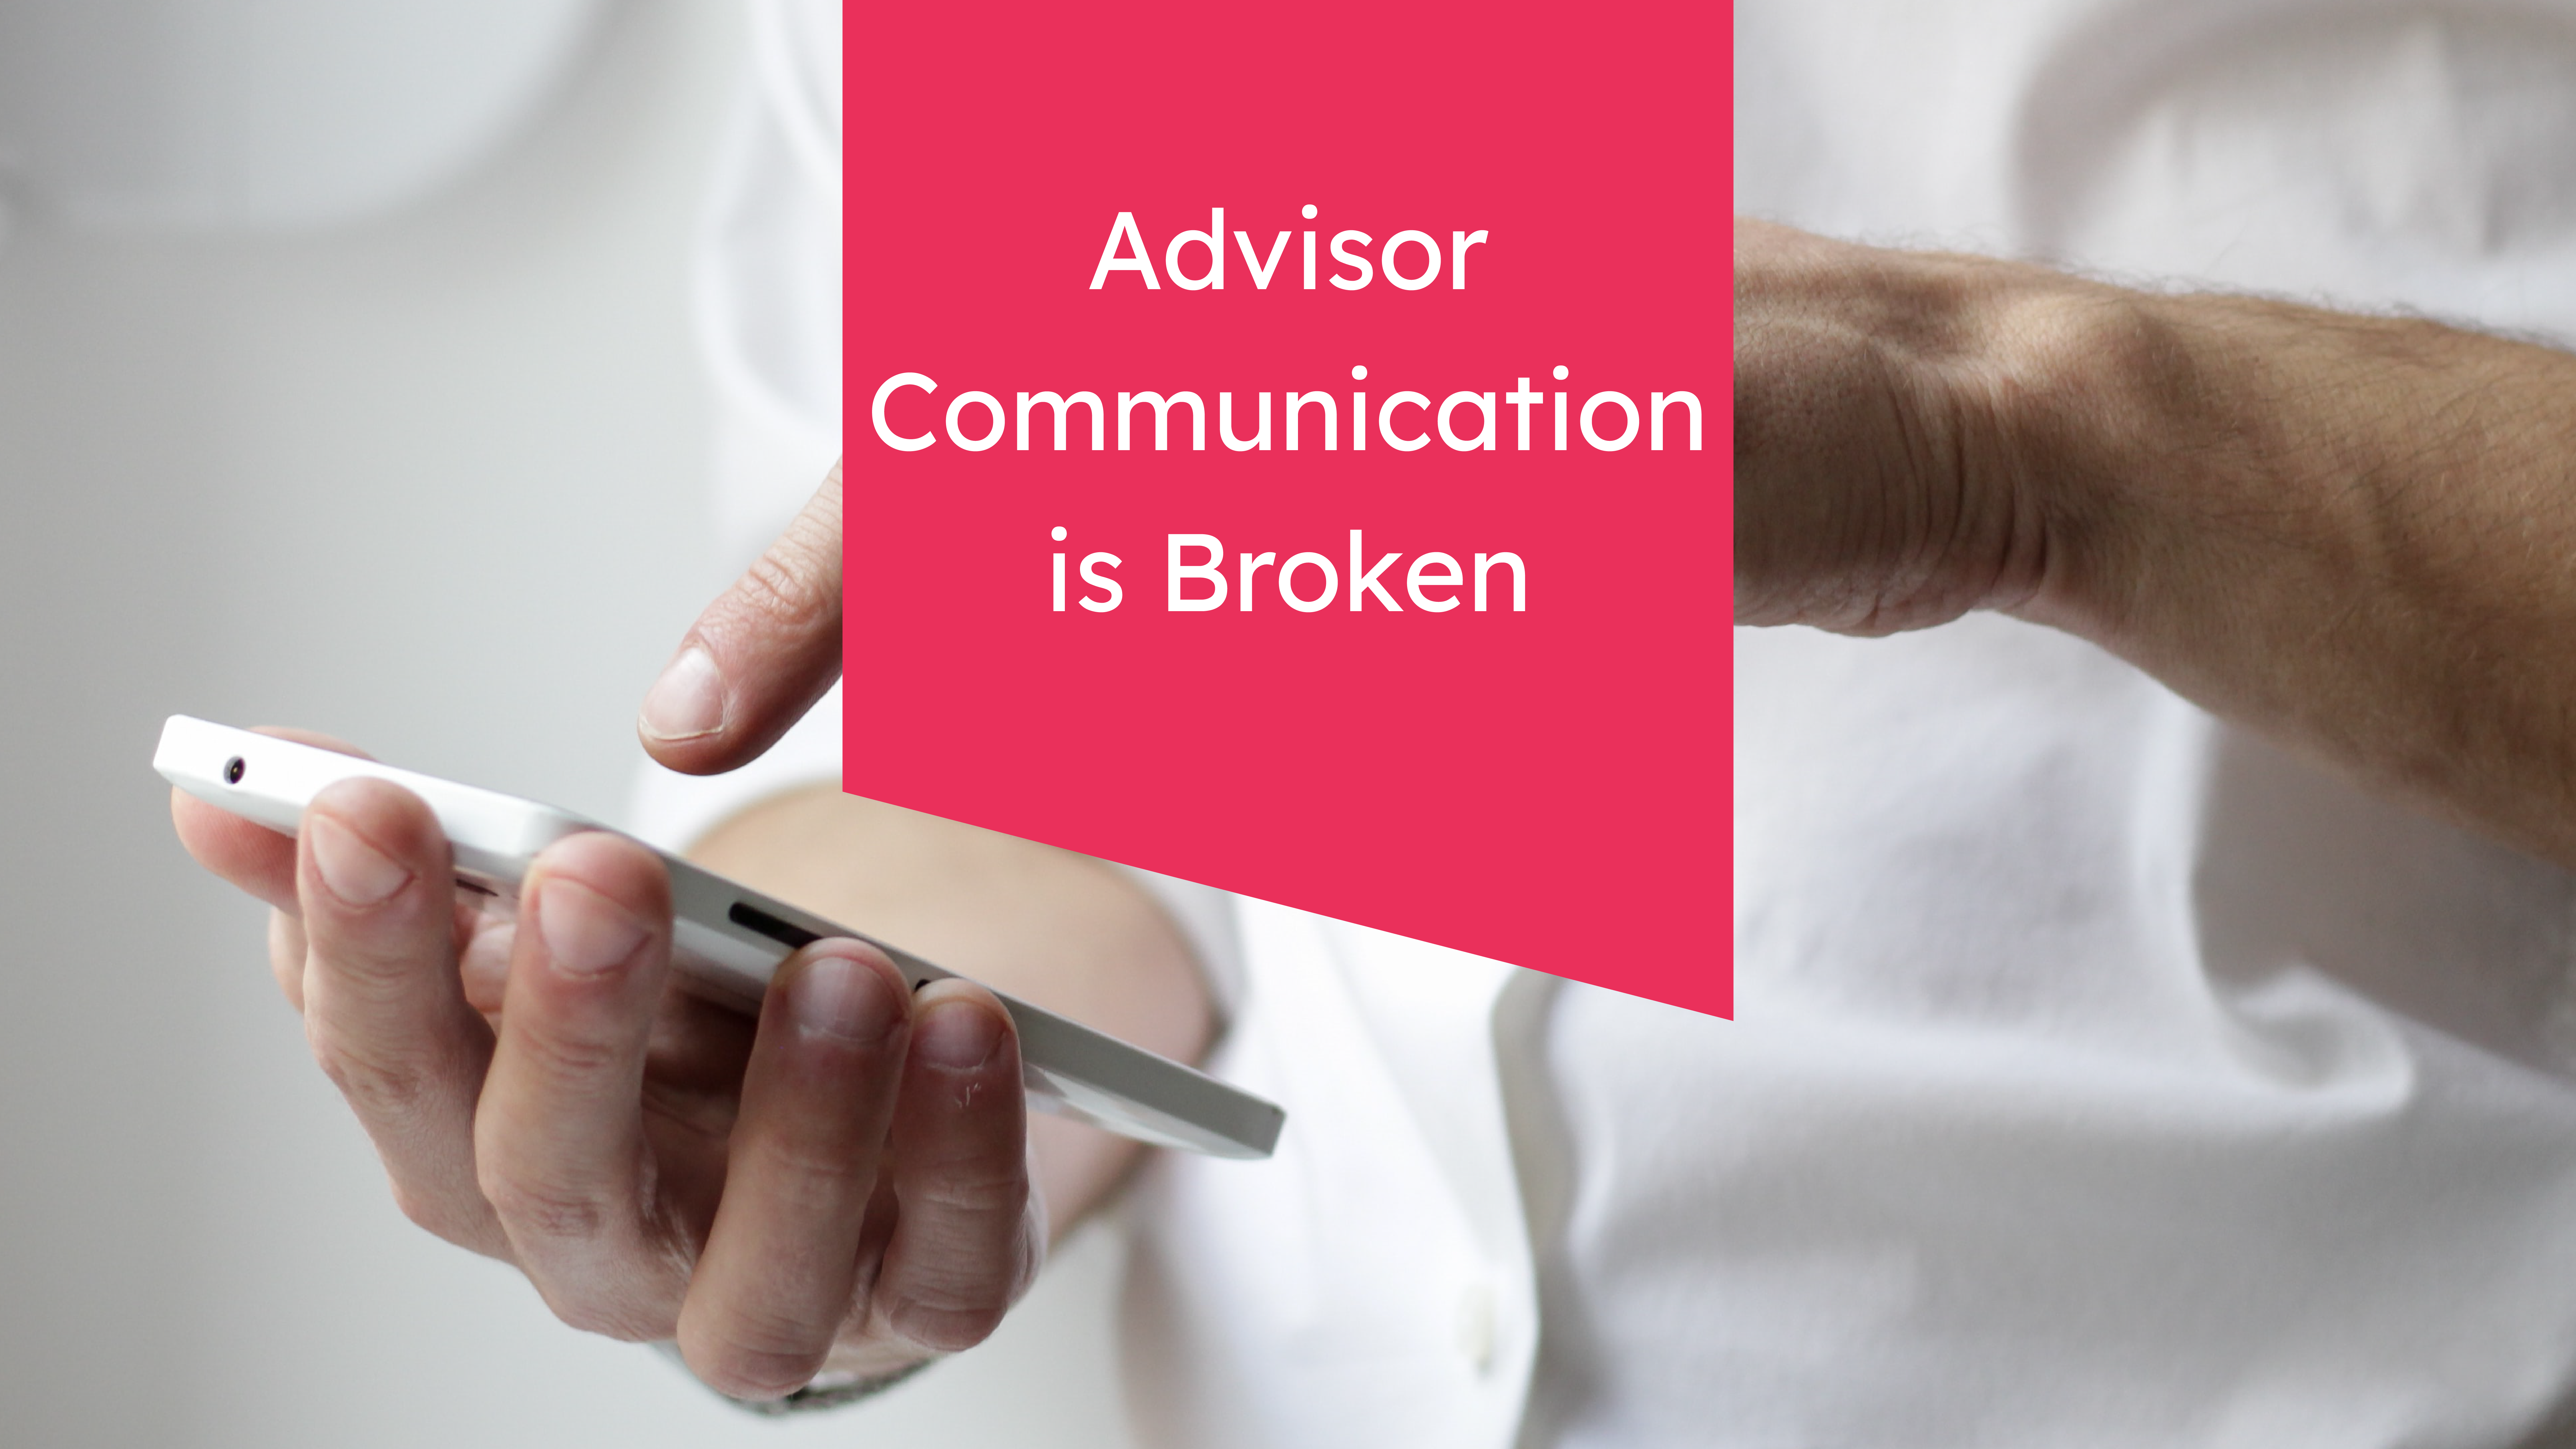 Why Financial Advisor Communication is Broken (And What You Can Do to Fix It)